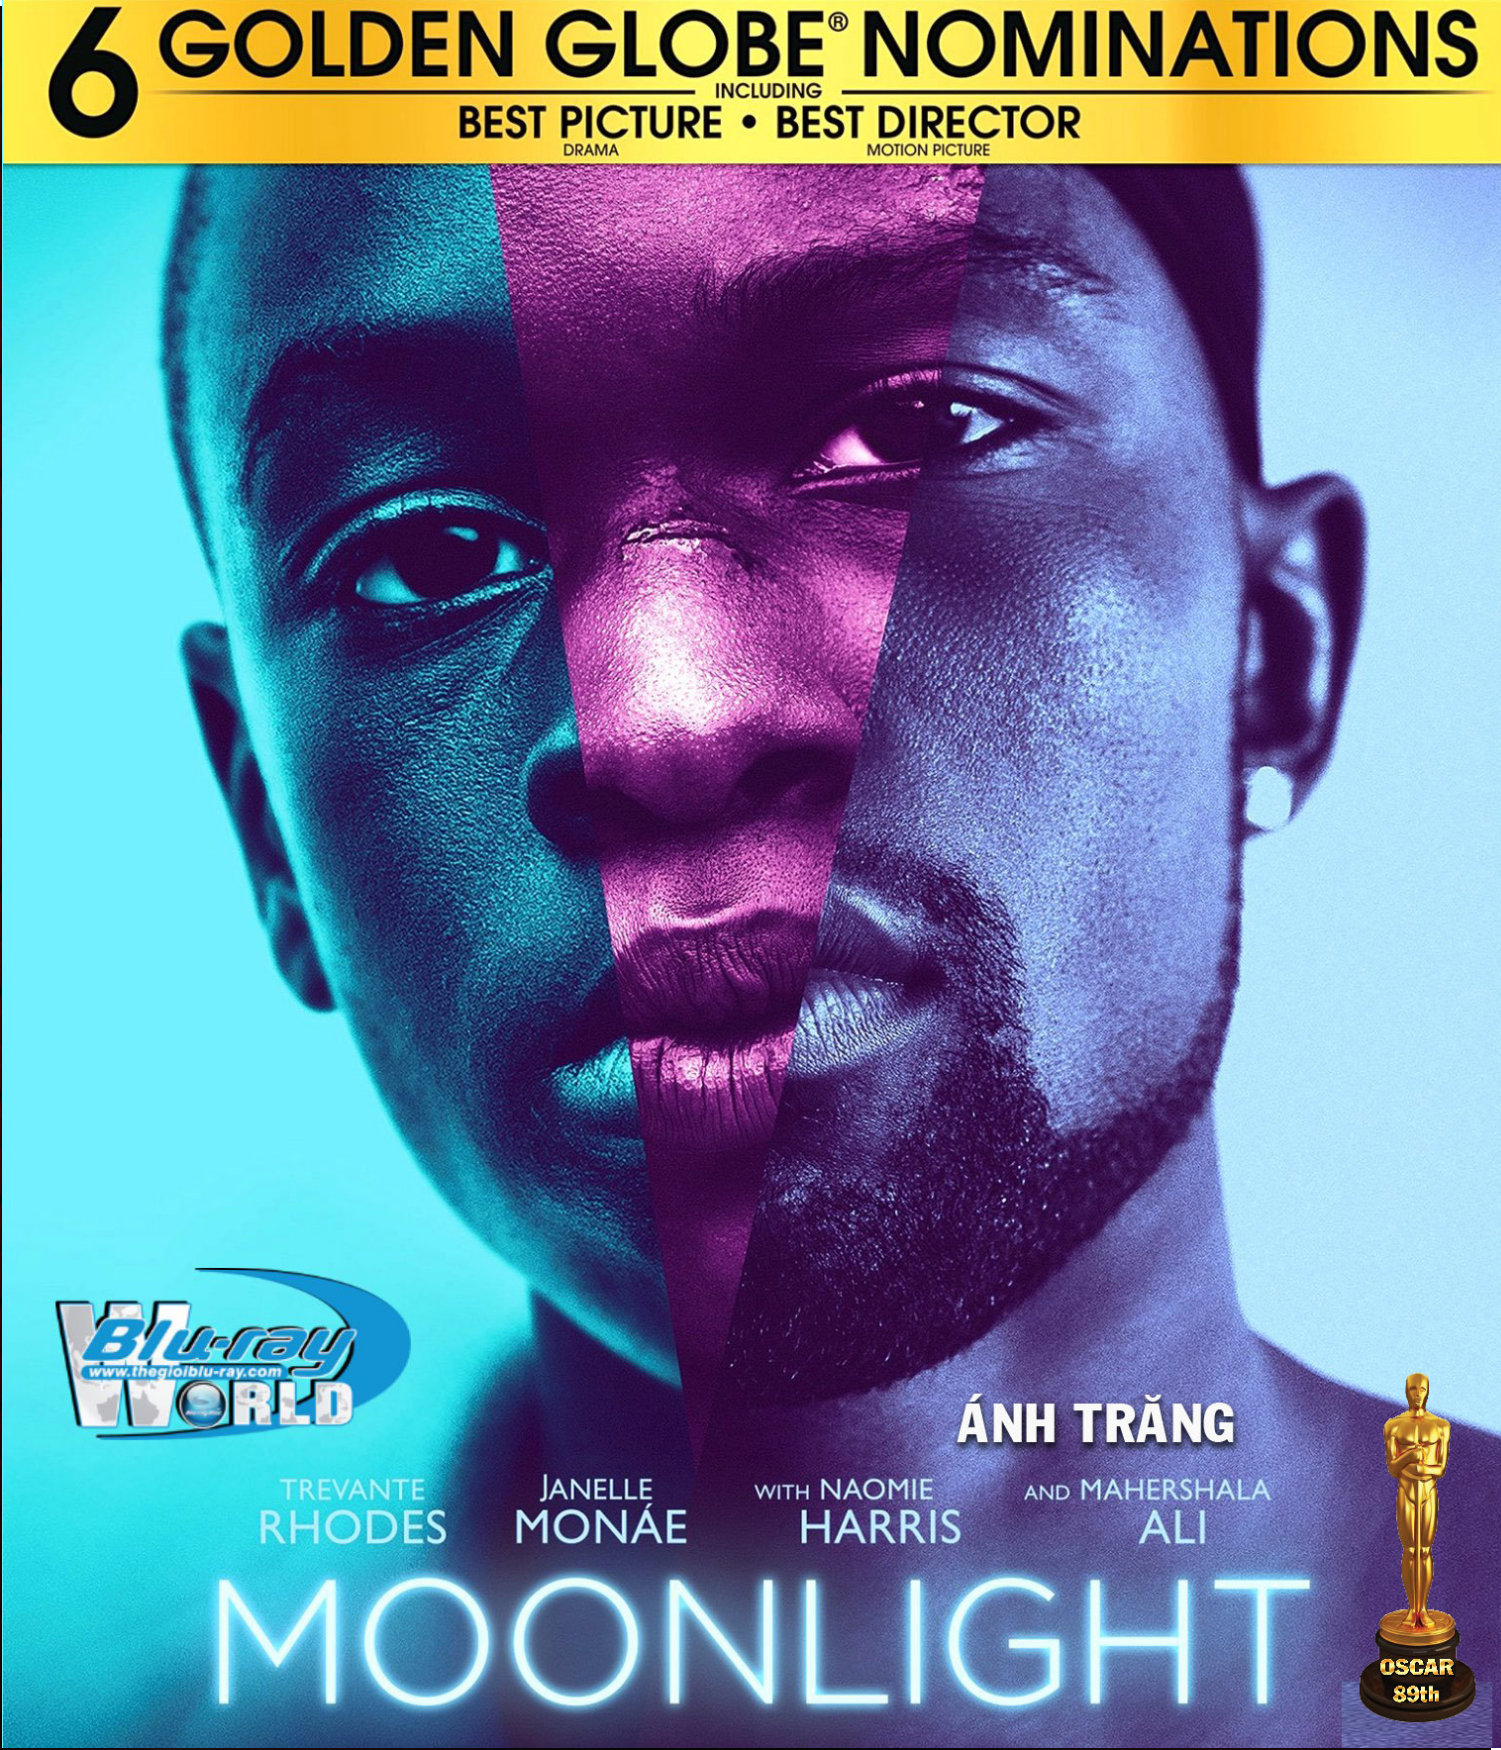 B2872. Moonlight 2016 - Ánh Trăng 2016 2D25G (DTS-HD MA 5.1) OSCAR 89TH